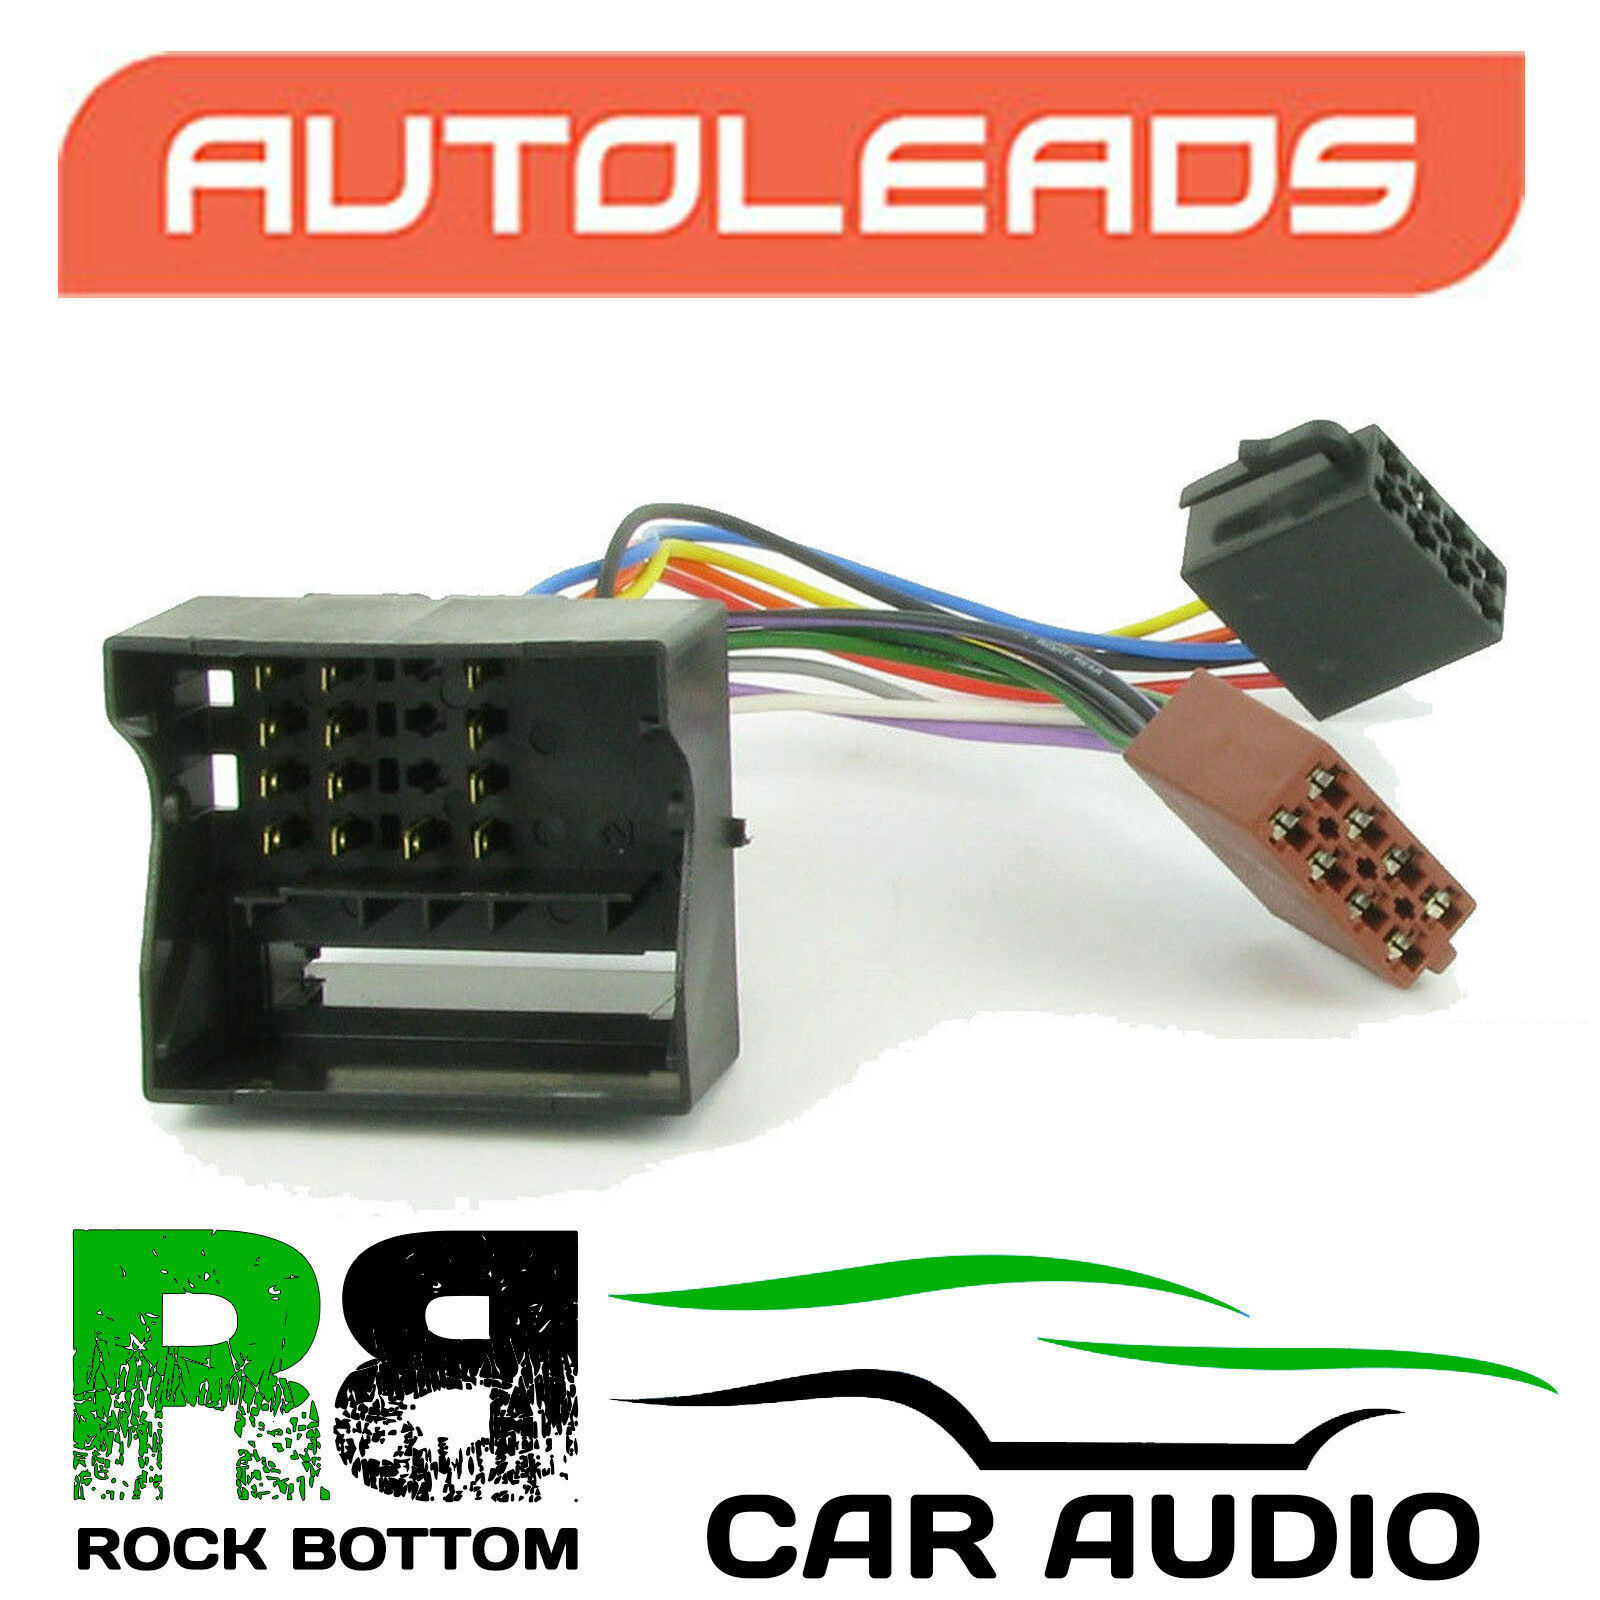 Autoleads Pc2 84 4 Ford Focus 05 Car Stereo Iso Adaptor Plug Lead Toyota Avensis Radio Harness Adapter Wiring Connector 1 Of 1free Shipping See More